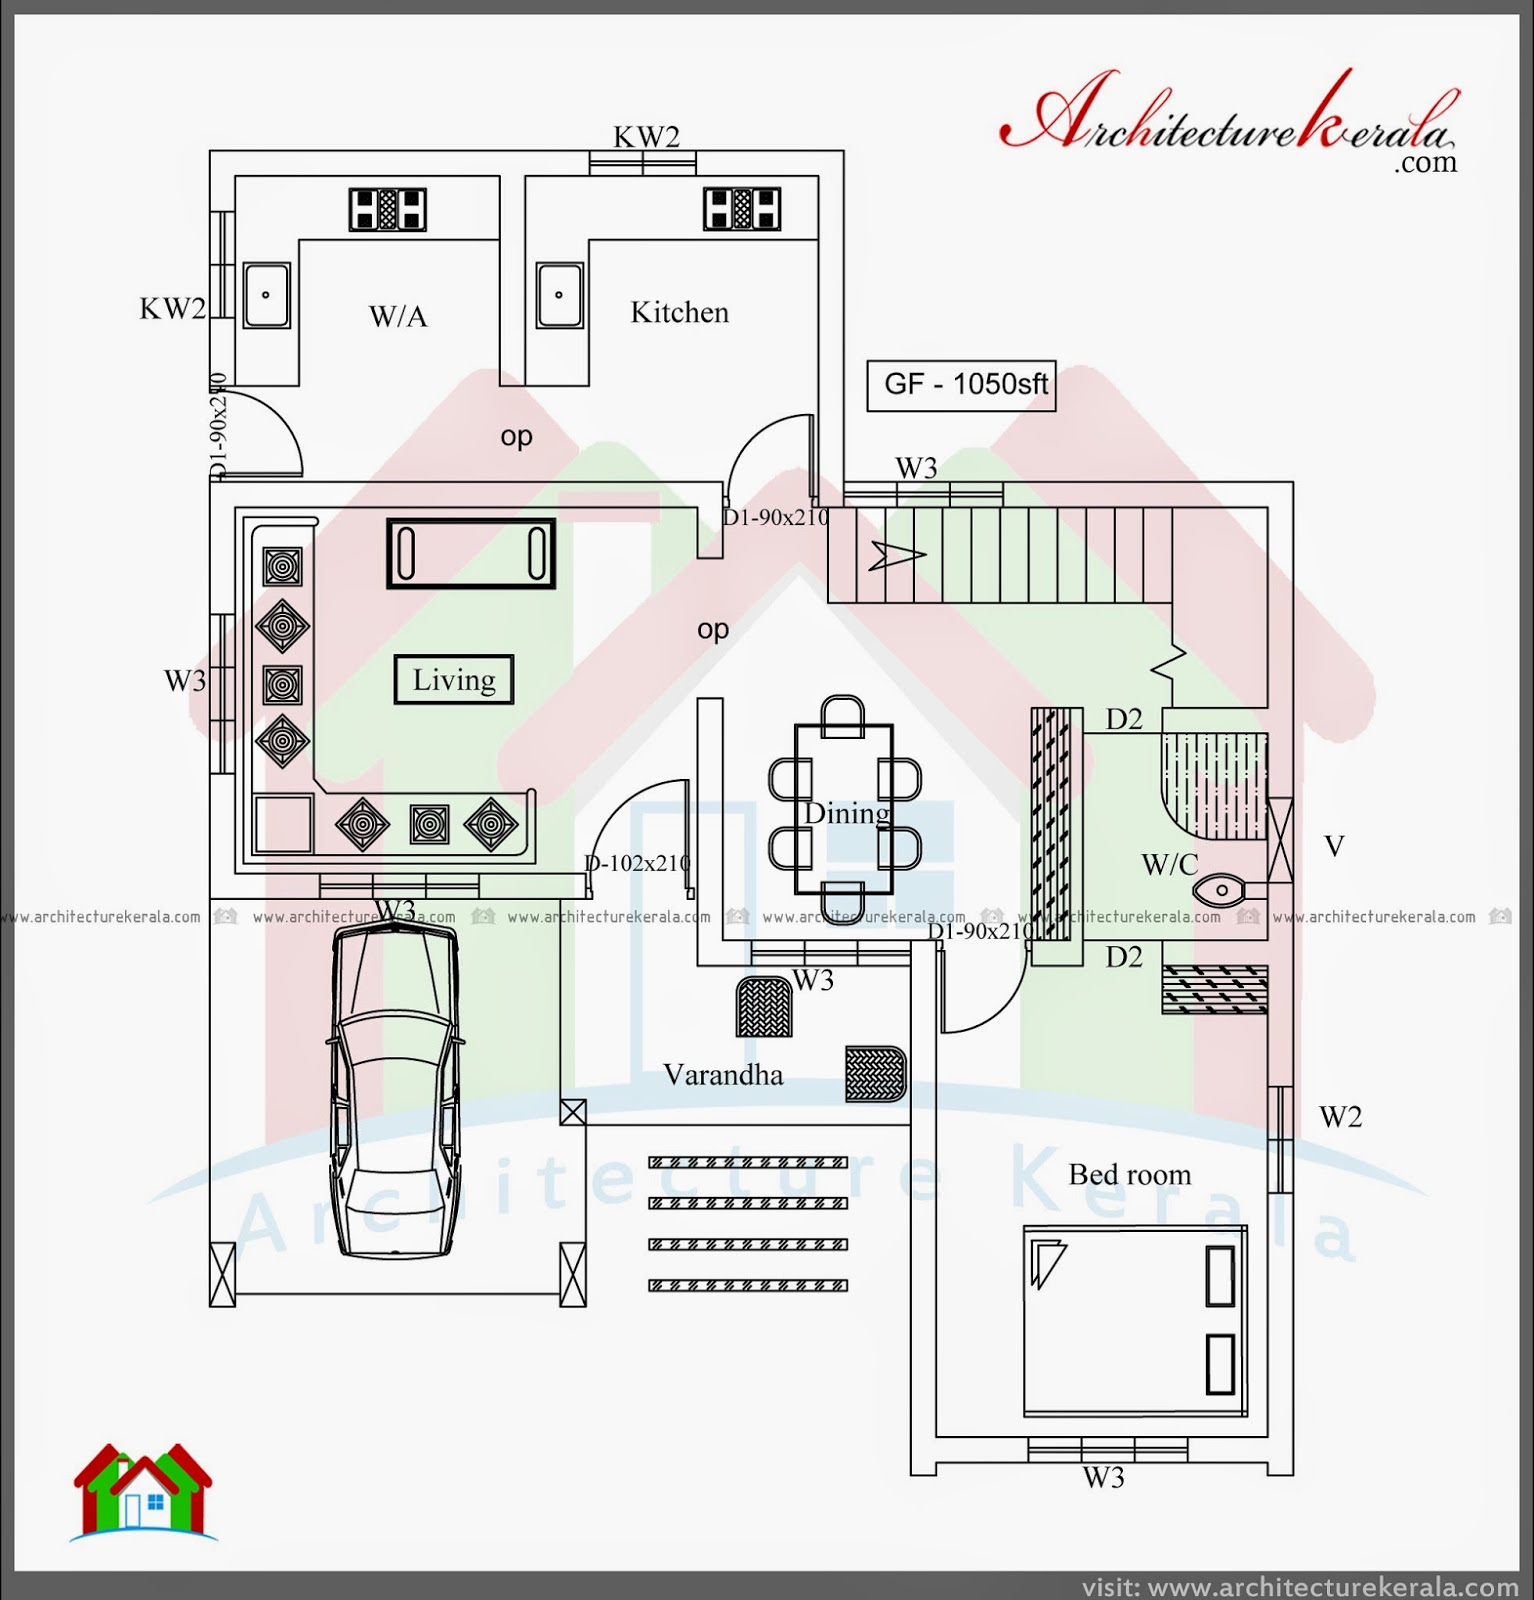 Three bedroom two storey house plan architecture kerala for Kerala two bedroom house plans